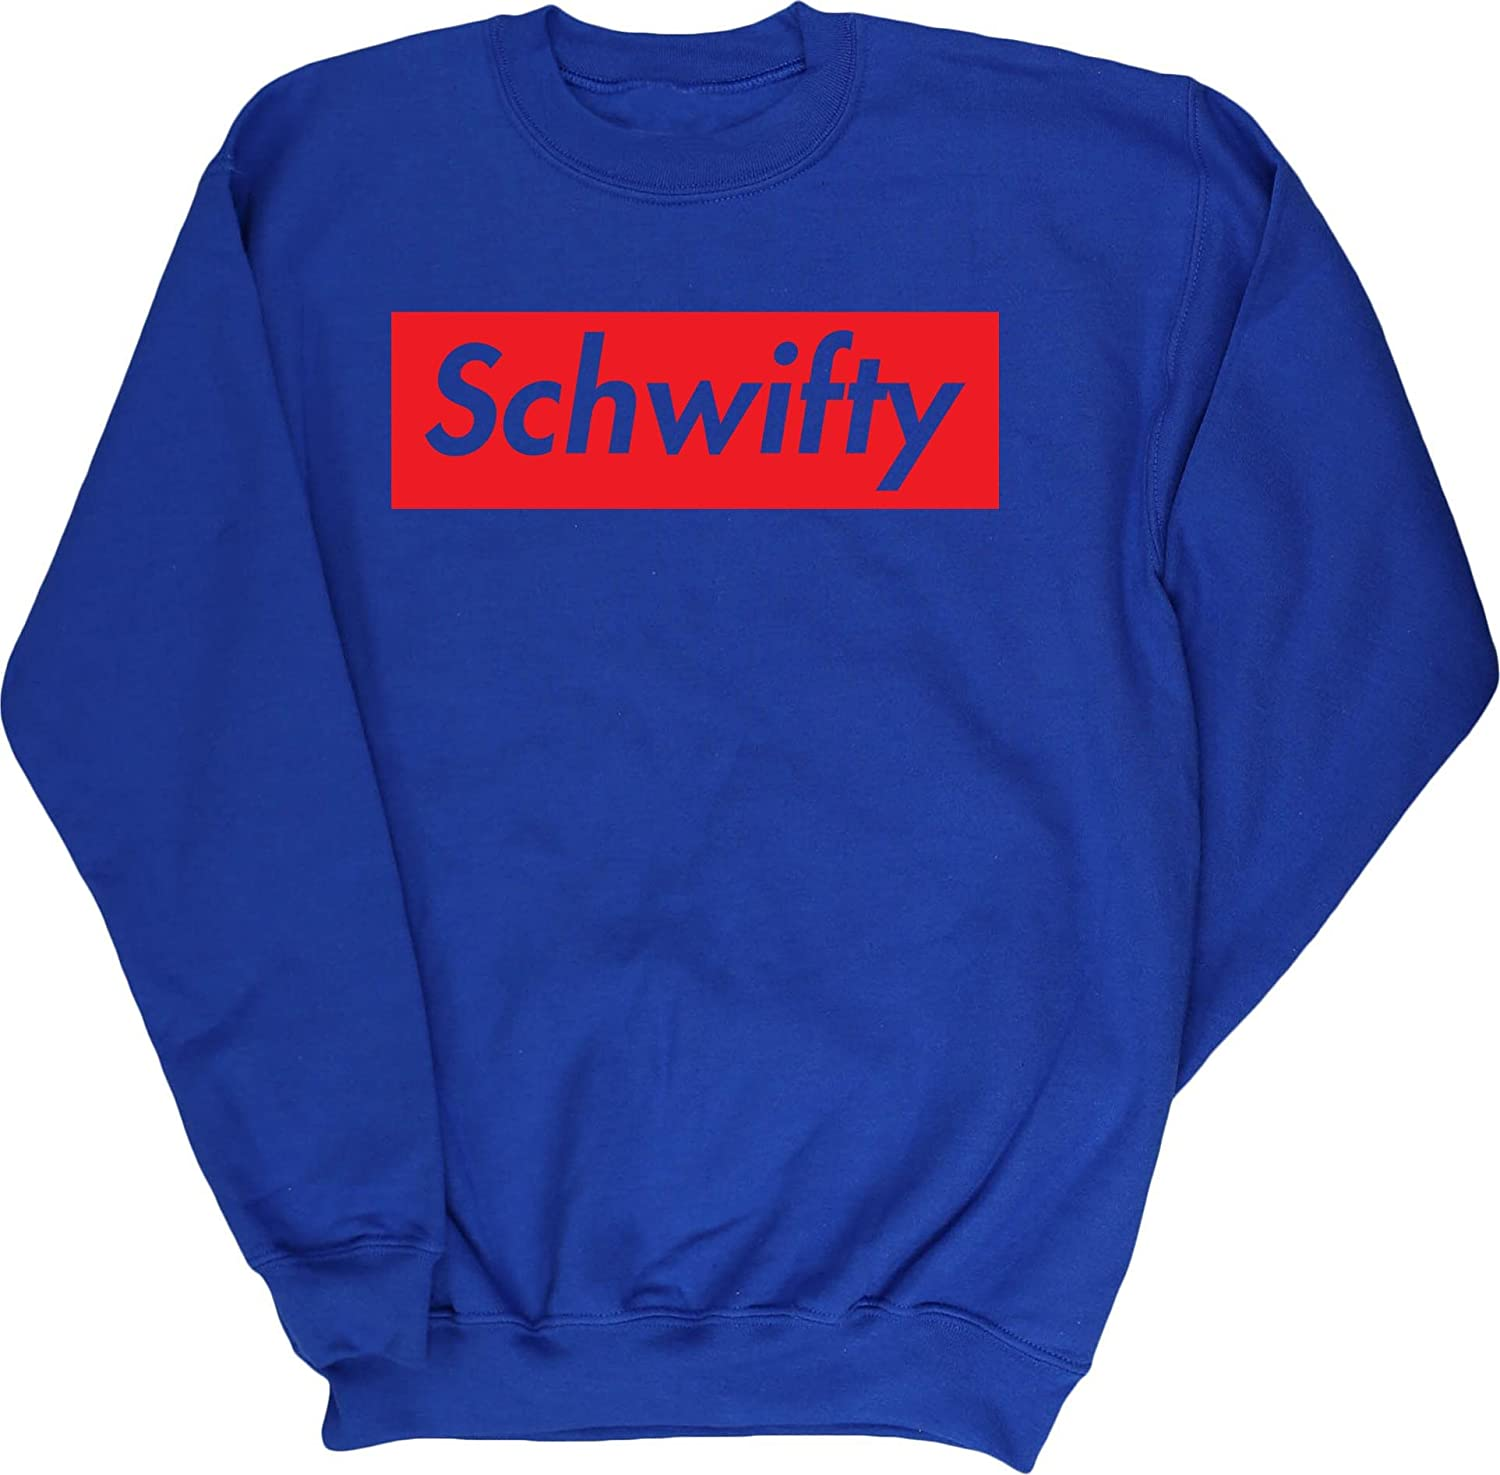 Hippowarehouse Schwifty Unisex Jumper Sweatshirt Pullover Specific Size Guide I